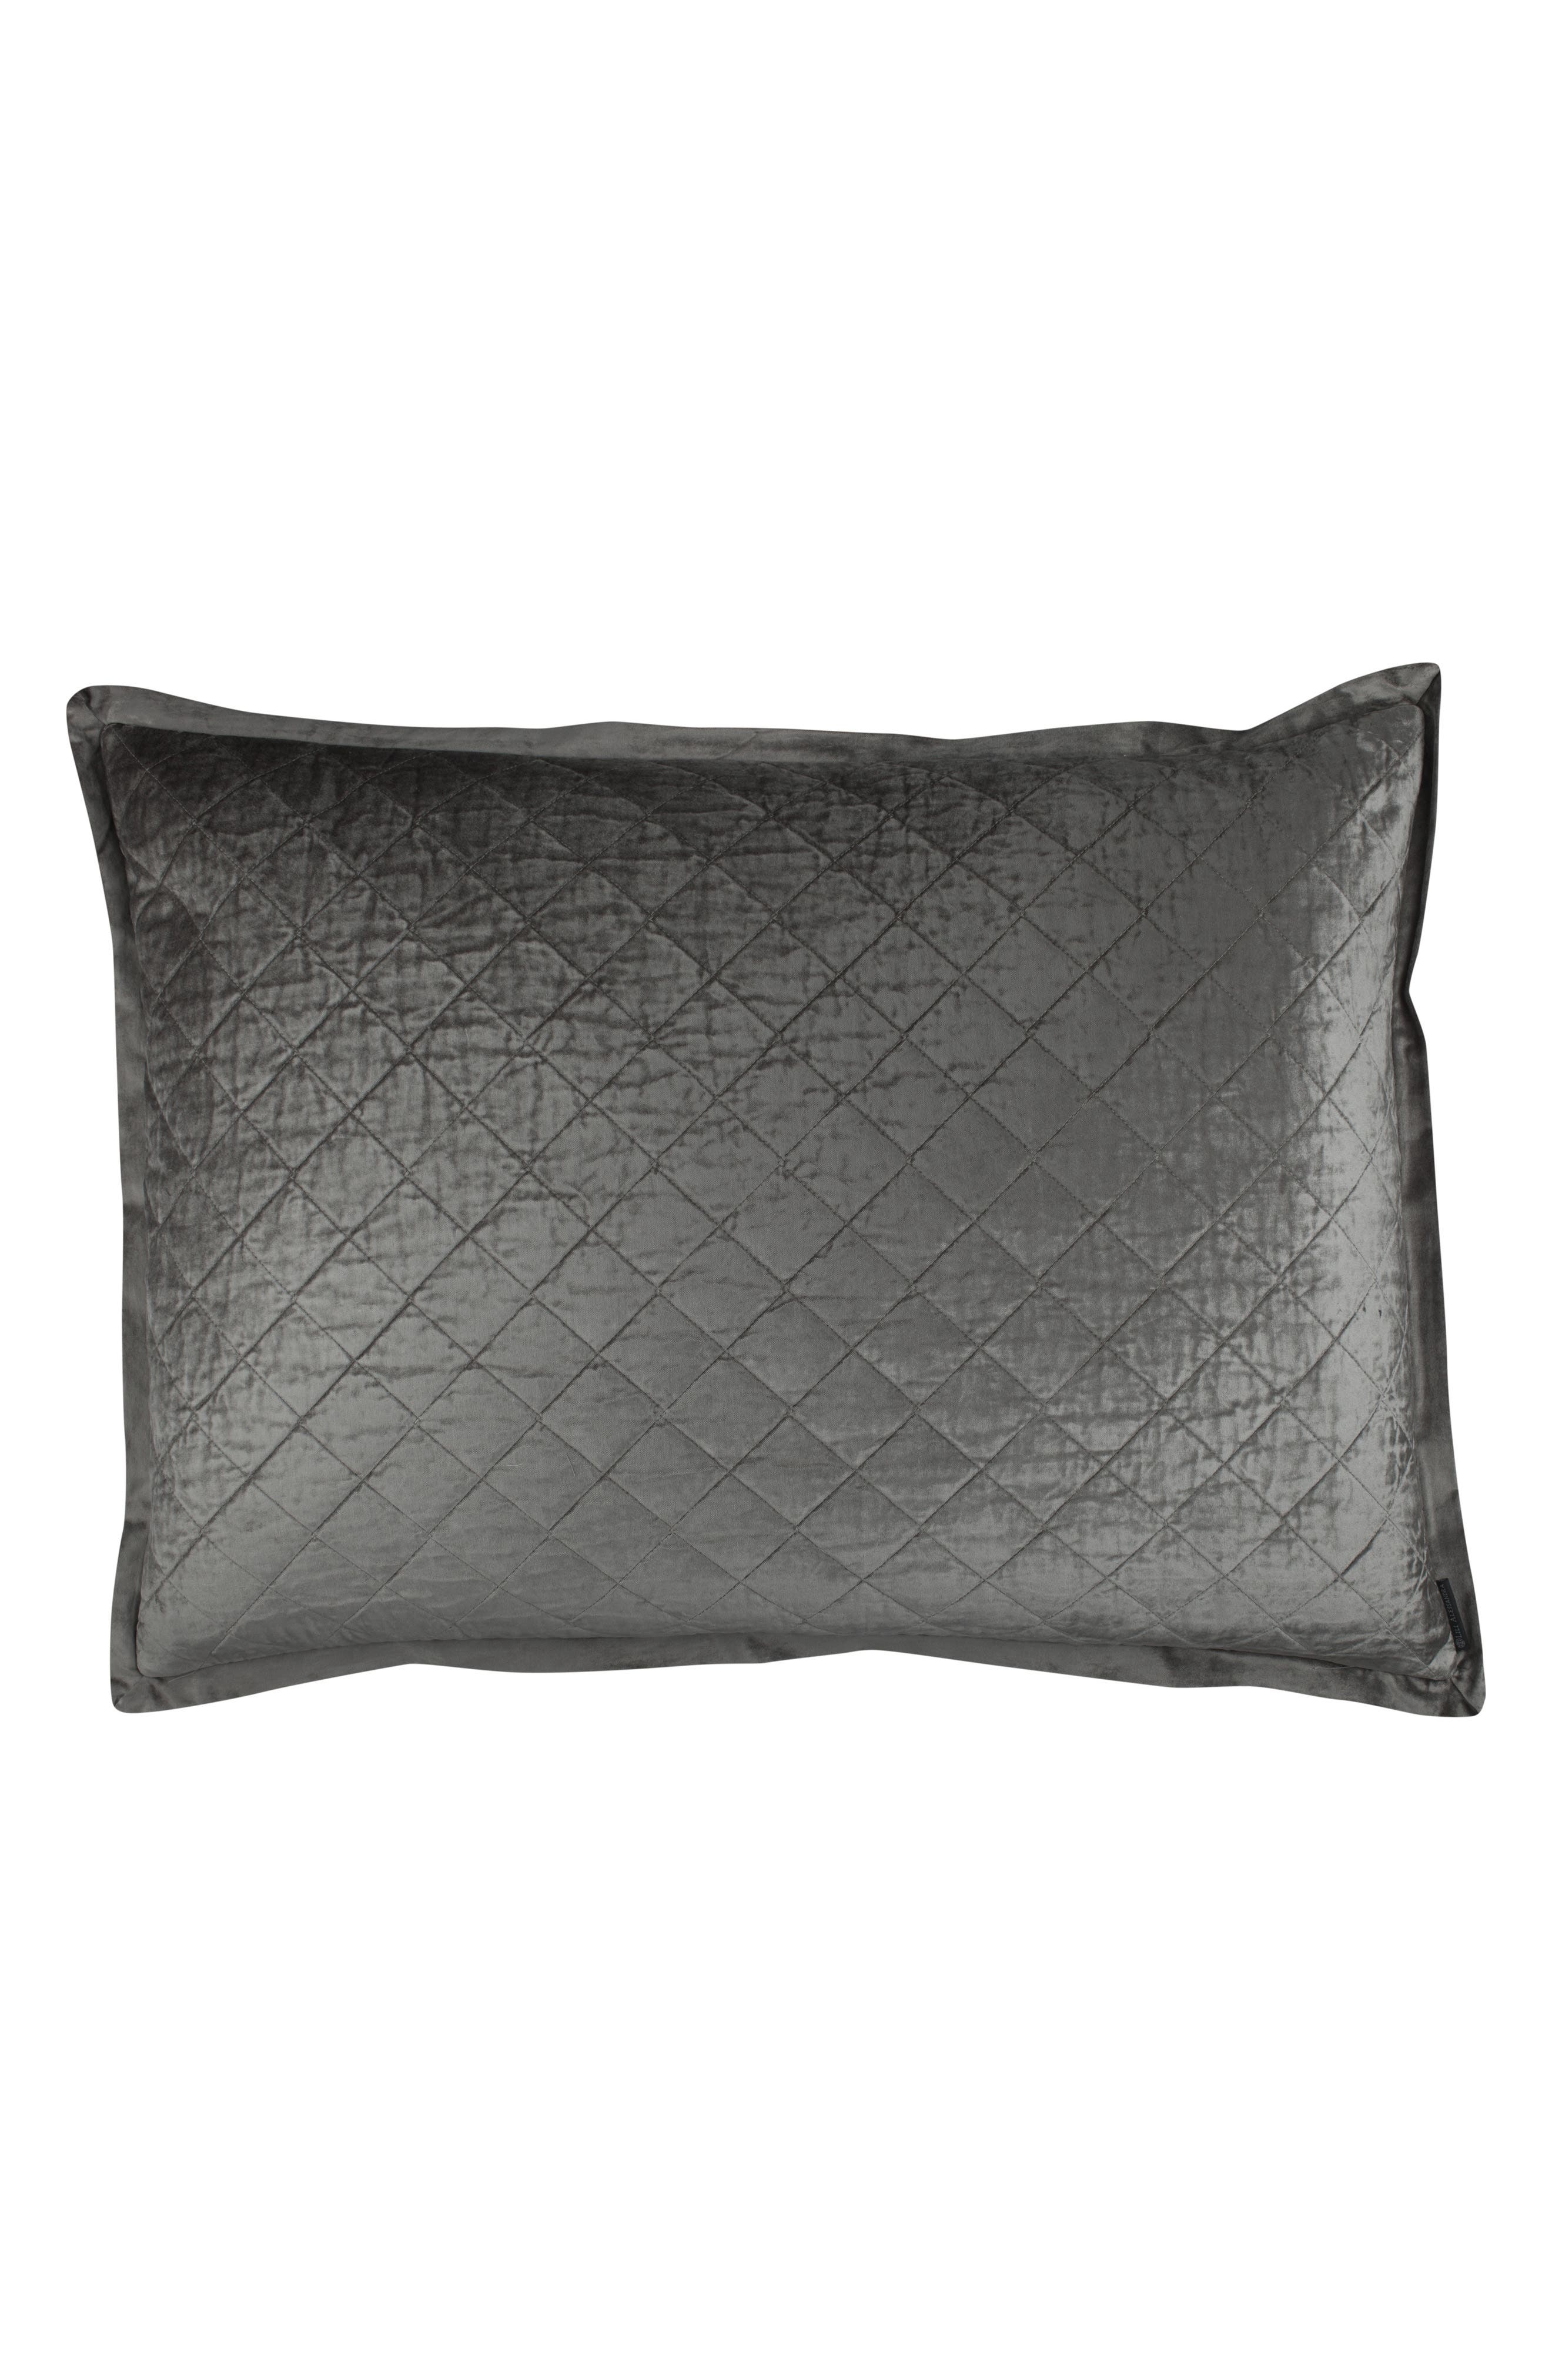 Chloe Luxe Euro Quilted Sham,                         Main,                         color, 020